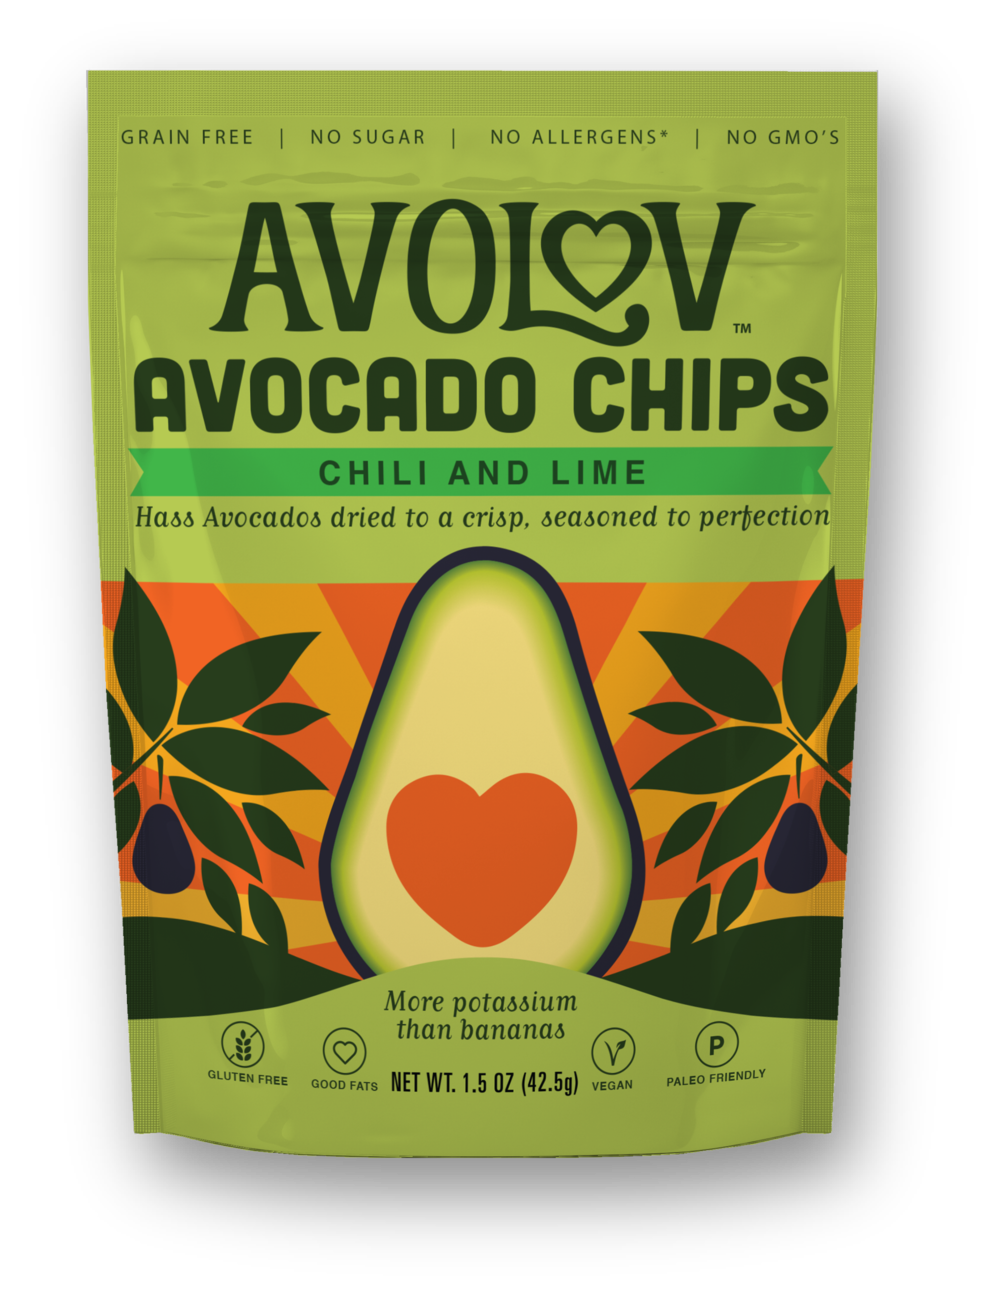 Chili and Lime Avocado Chips